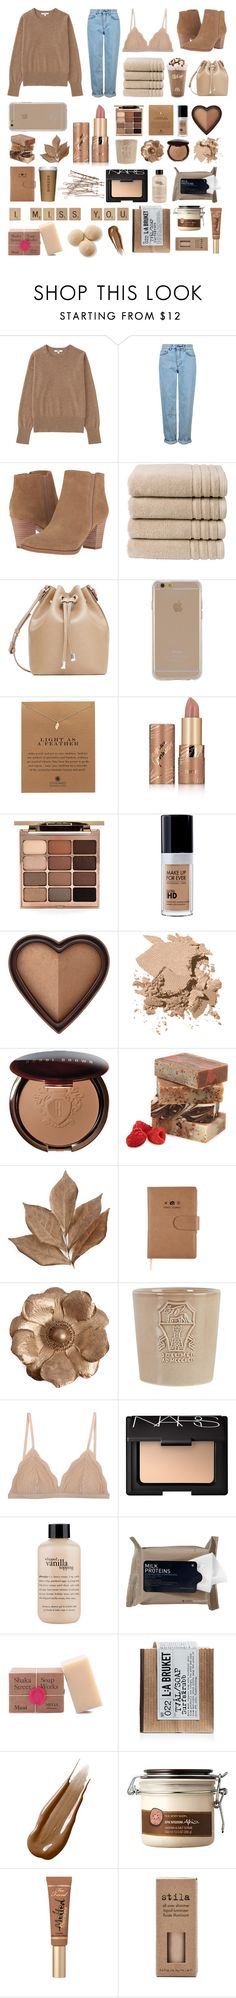 """AMBER"" by x-nyaaa ❤ liked on Polyvore featuring Uniqlo, Topshop, Franco Sarto, Christy, MANGO, Agent 18, Dogeared, tarte, Stila and Too Faced Cosmetics"